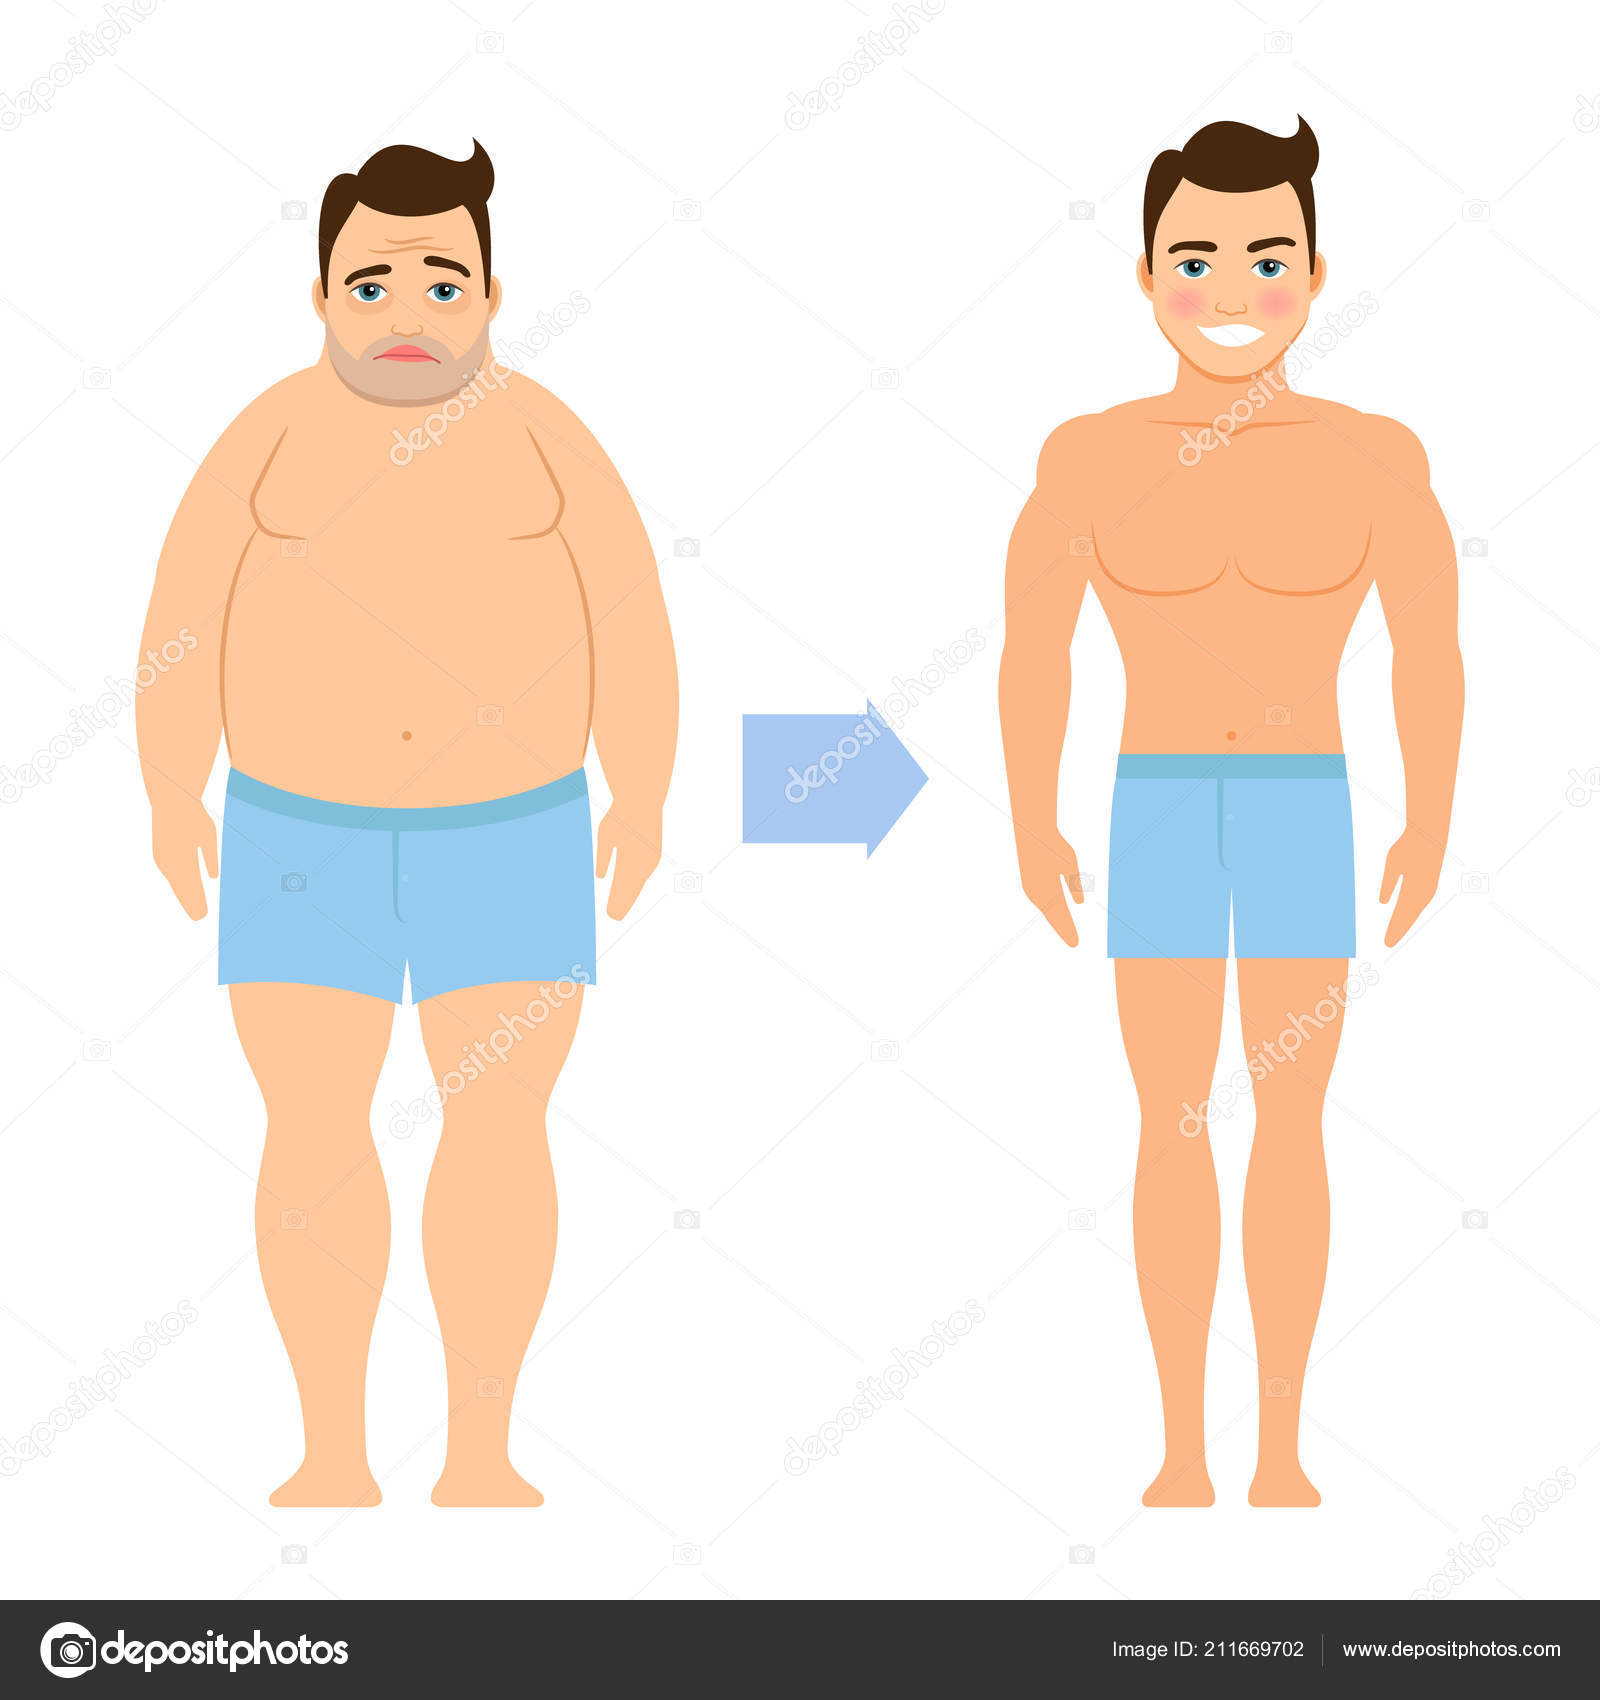 Man Before And After Weight Loss Stock Vector C Ssstocker 211669702